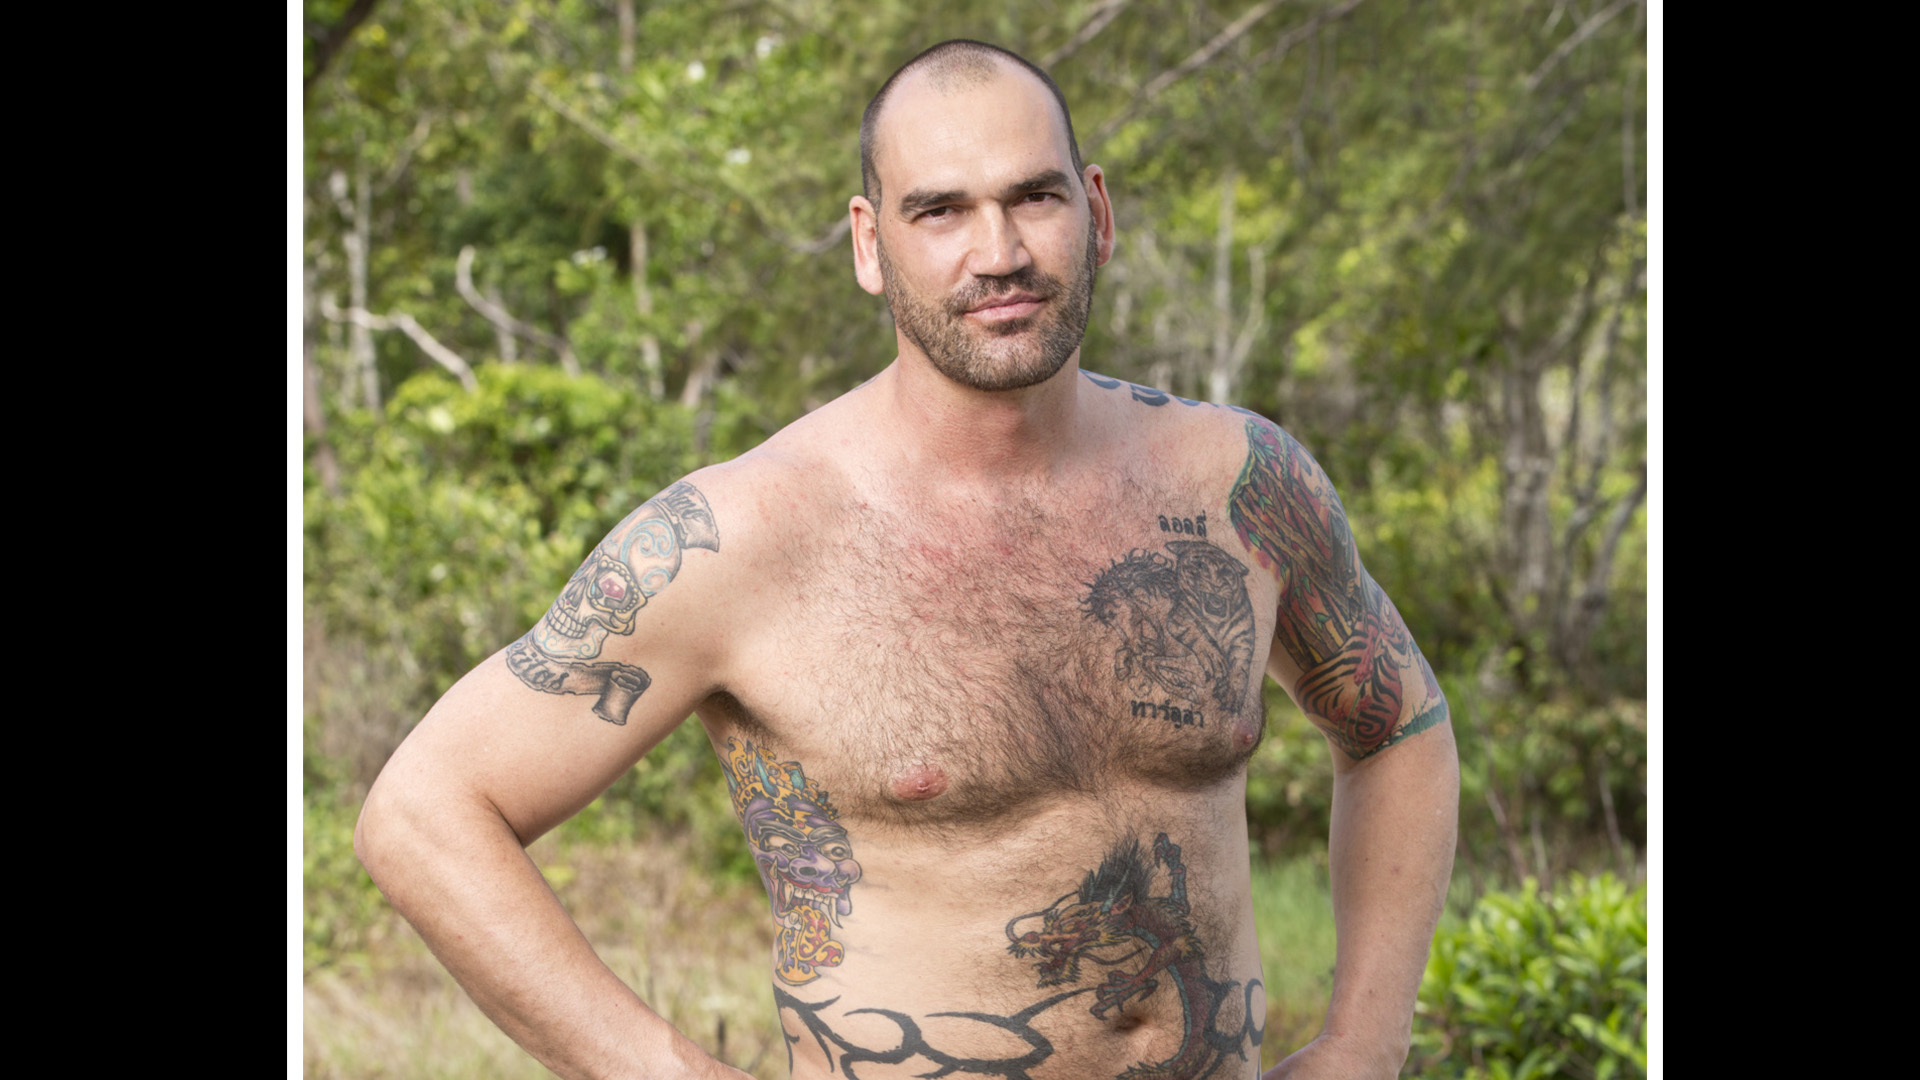 7. What did you find most surprising about being on Survivor?